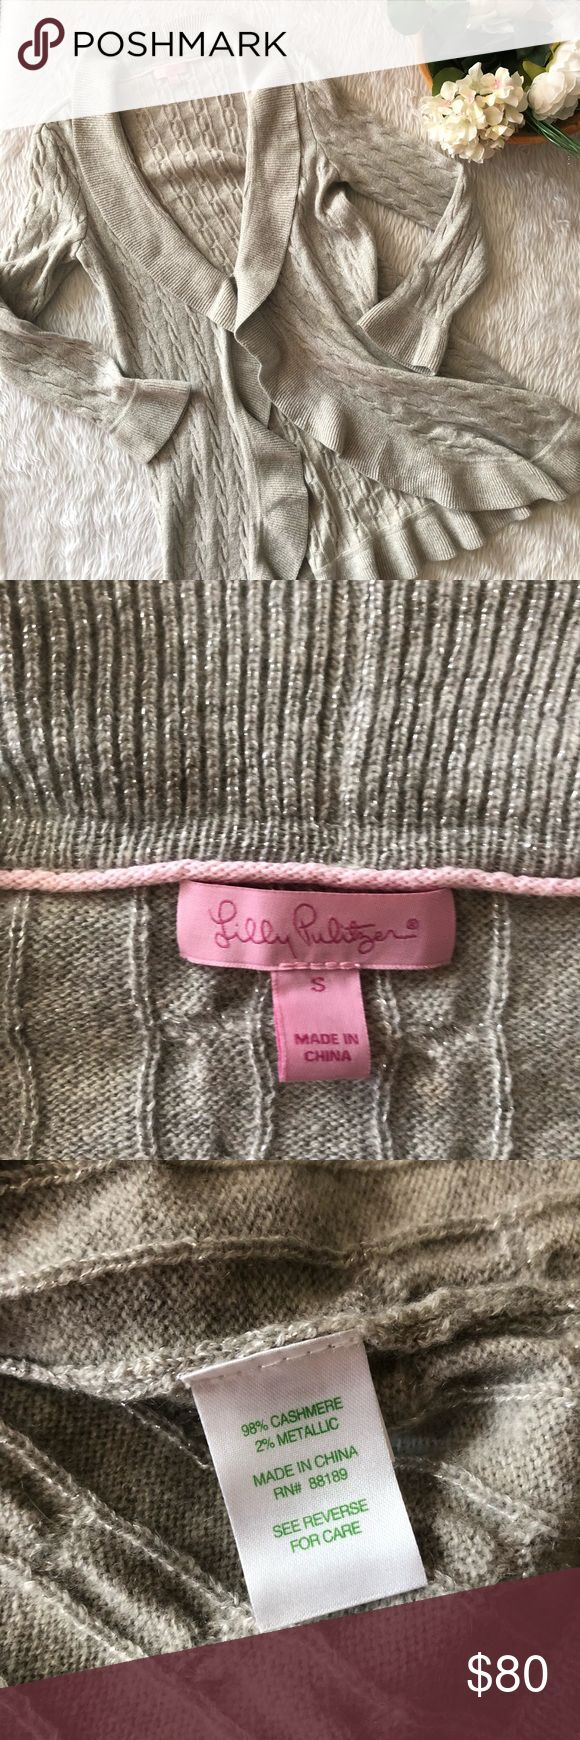 NWOT Lily Pulitzer Cashmere Metallic Cardigan This cardigan is in perfect condition!  Never worn  Size small  Pit to pit is approx 18 inches  Length is approx 33 inches  All measurements are from flat lays  Smoke and pet free home! No flaws like stains or holes! No modeling No trades! OFFERS WELCOME!😊 Lilly Pulitzer Sweaters Cardigans